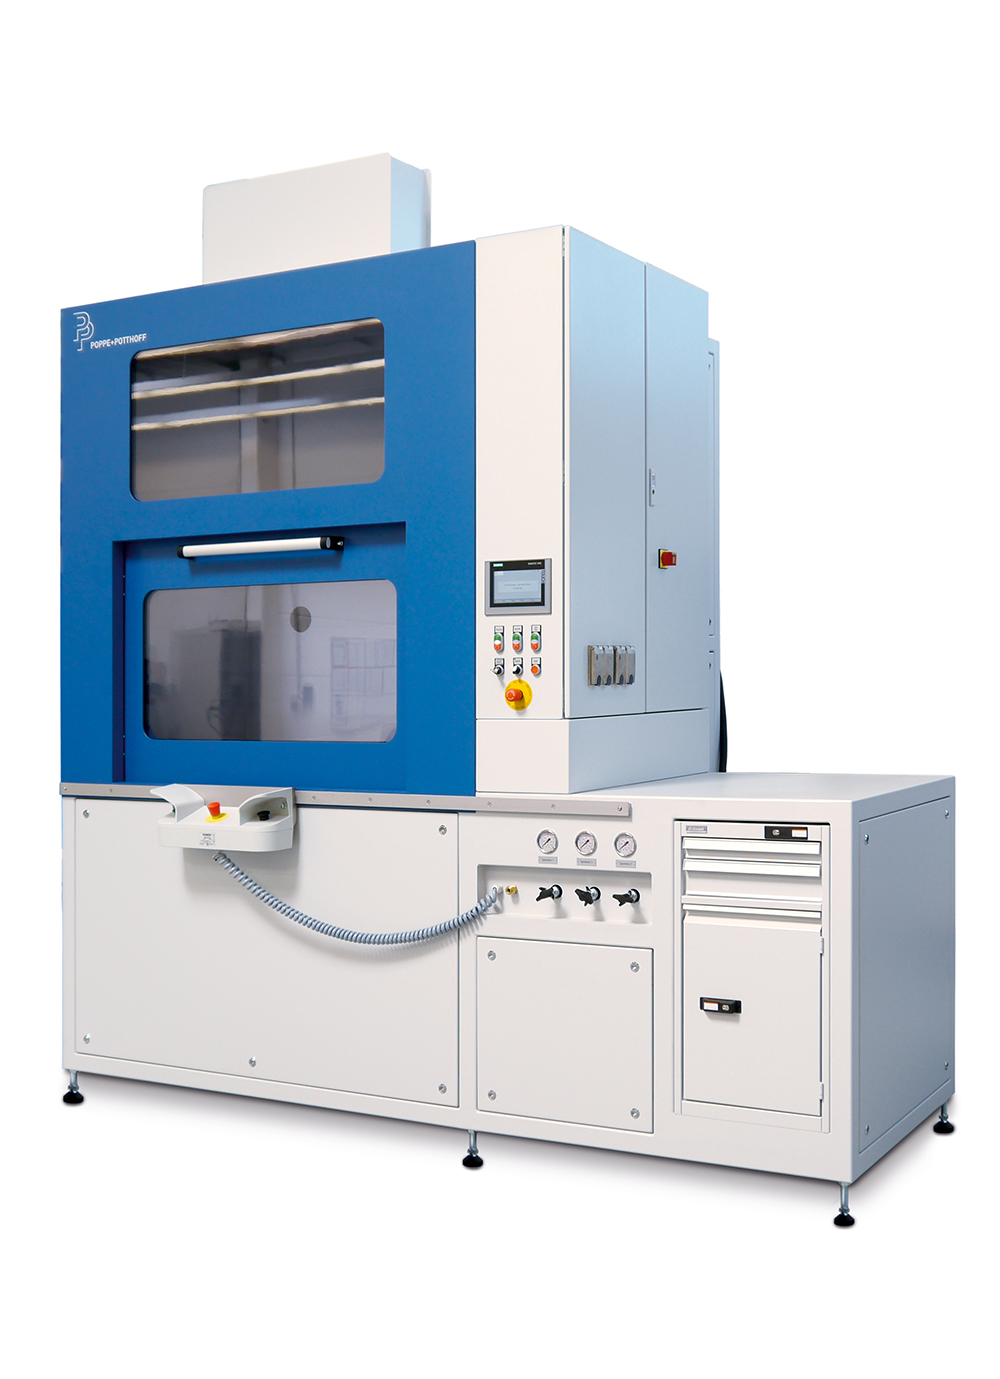 Autofrettage machine to increase fatigue strength of metal components